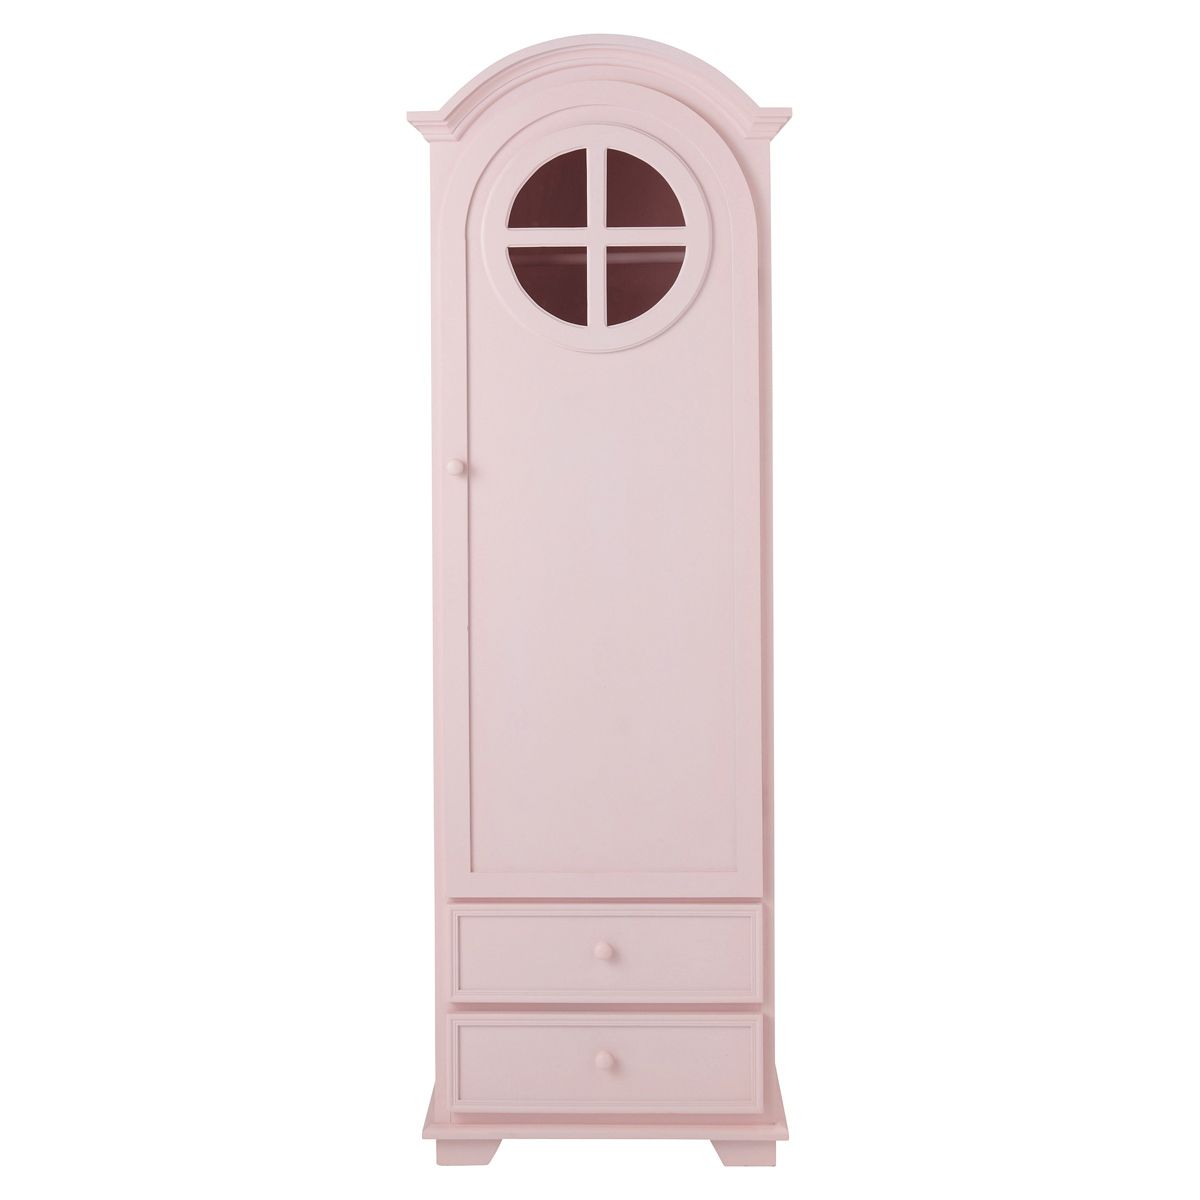 armoire bonneti re en bois rose l 62 cm armoires pastel et en bois. Black Bedroom Furniture Sets. Home Design Ideas